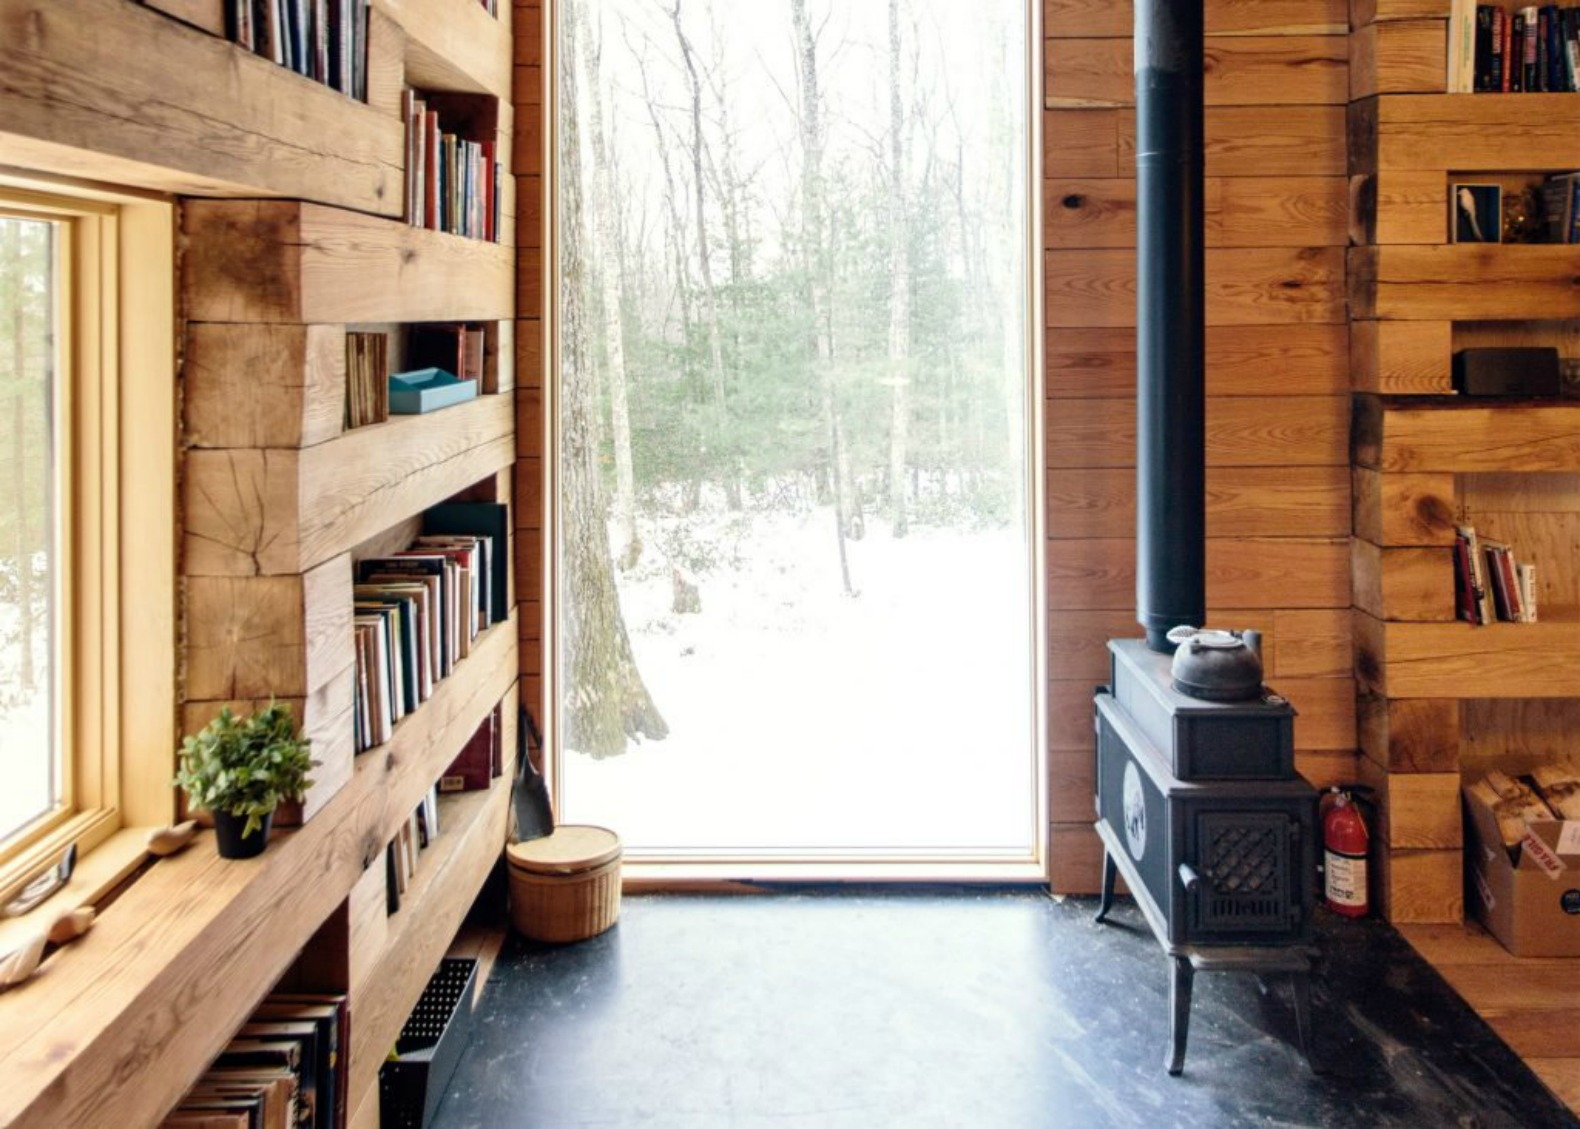 Studio Padron Architects create sublime reading cabin in upstate New ...